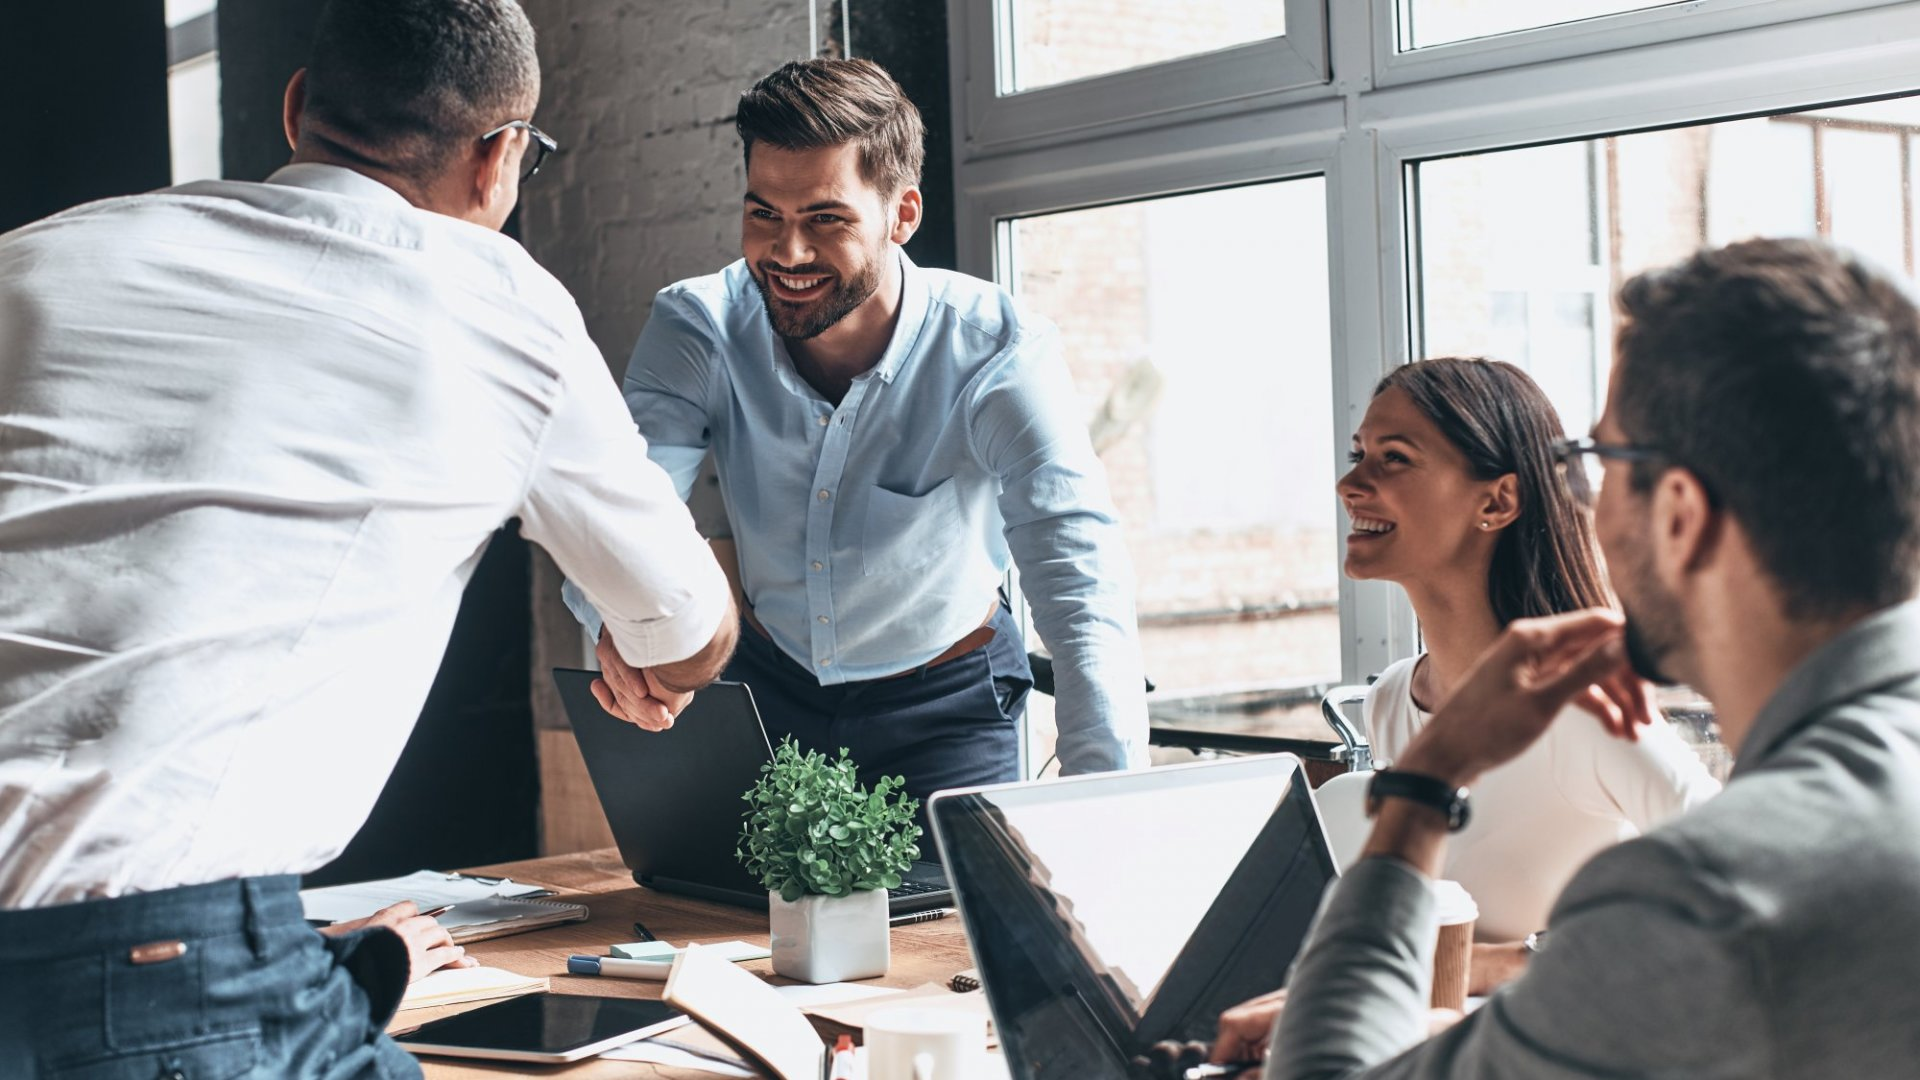 4 Essential Elements of Every Successful Business Meeting